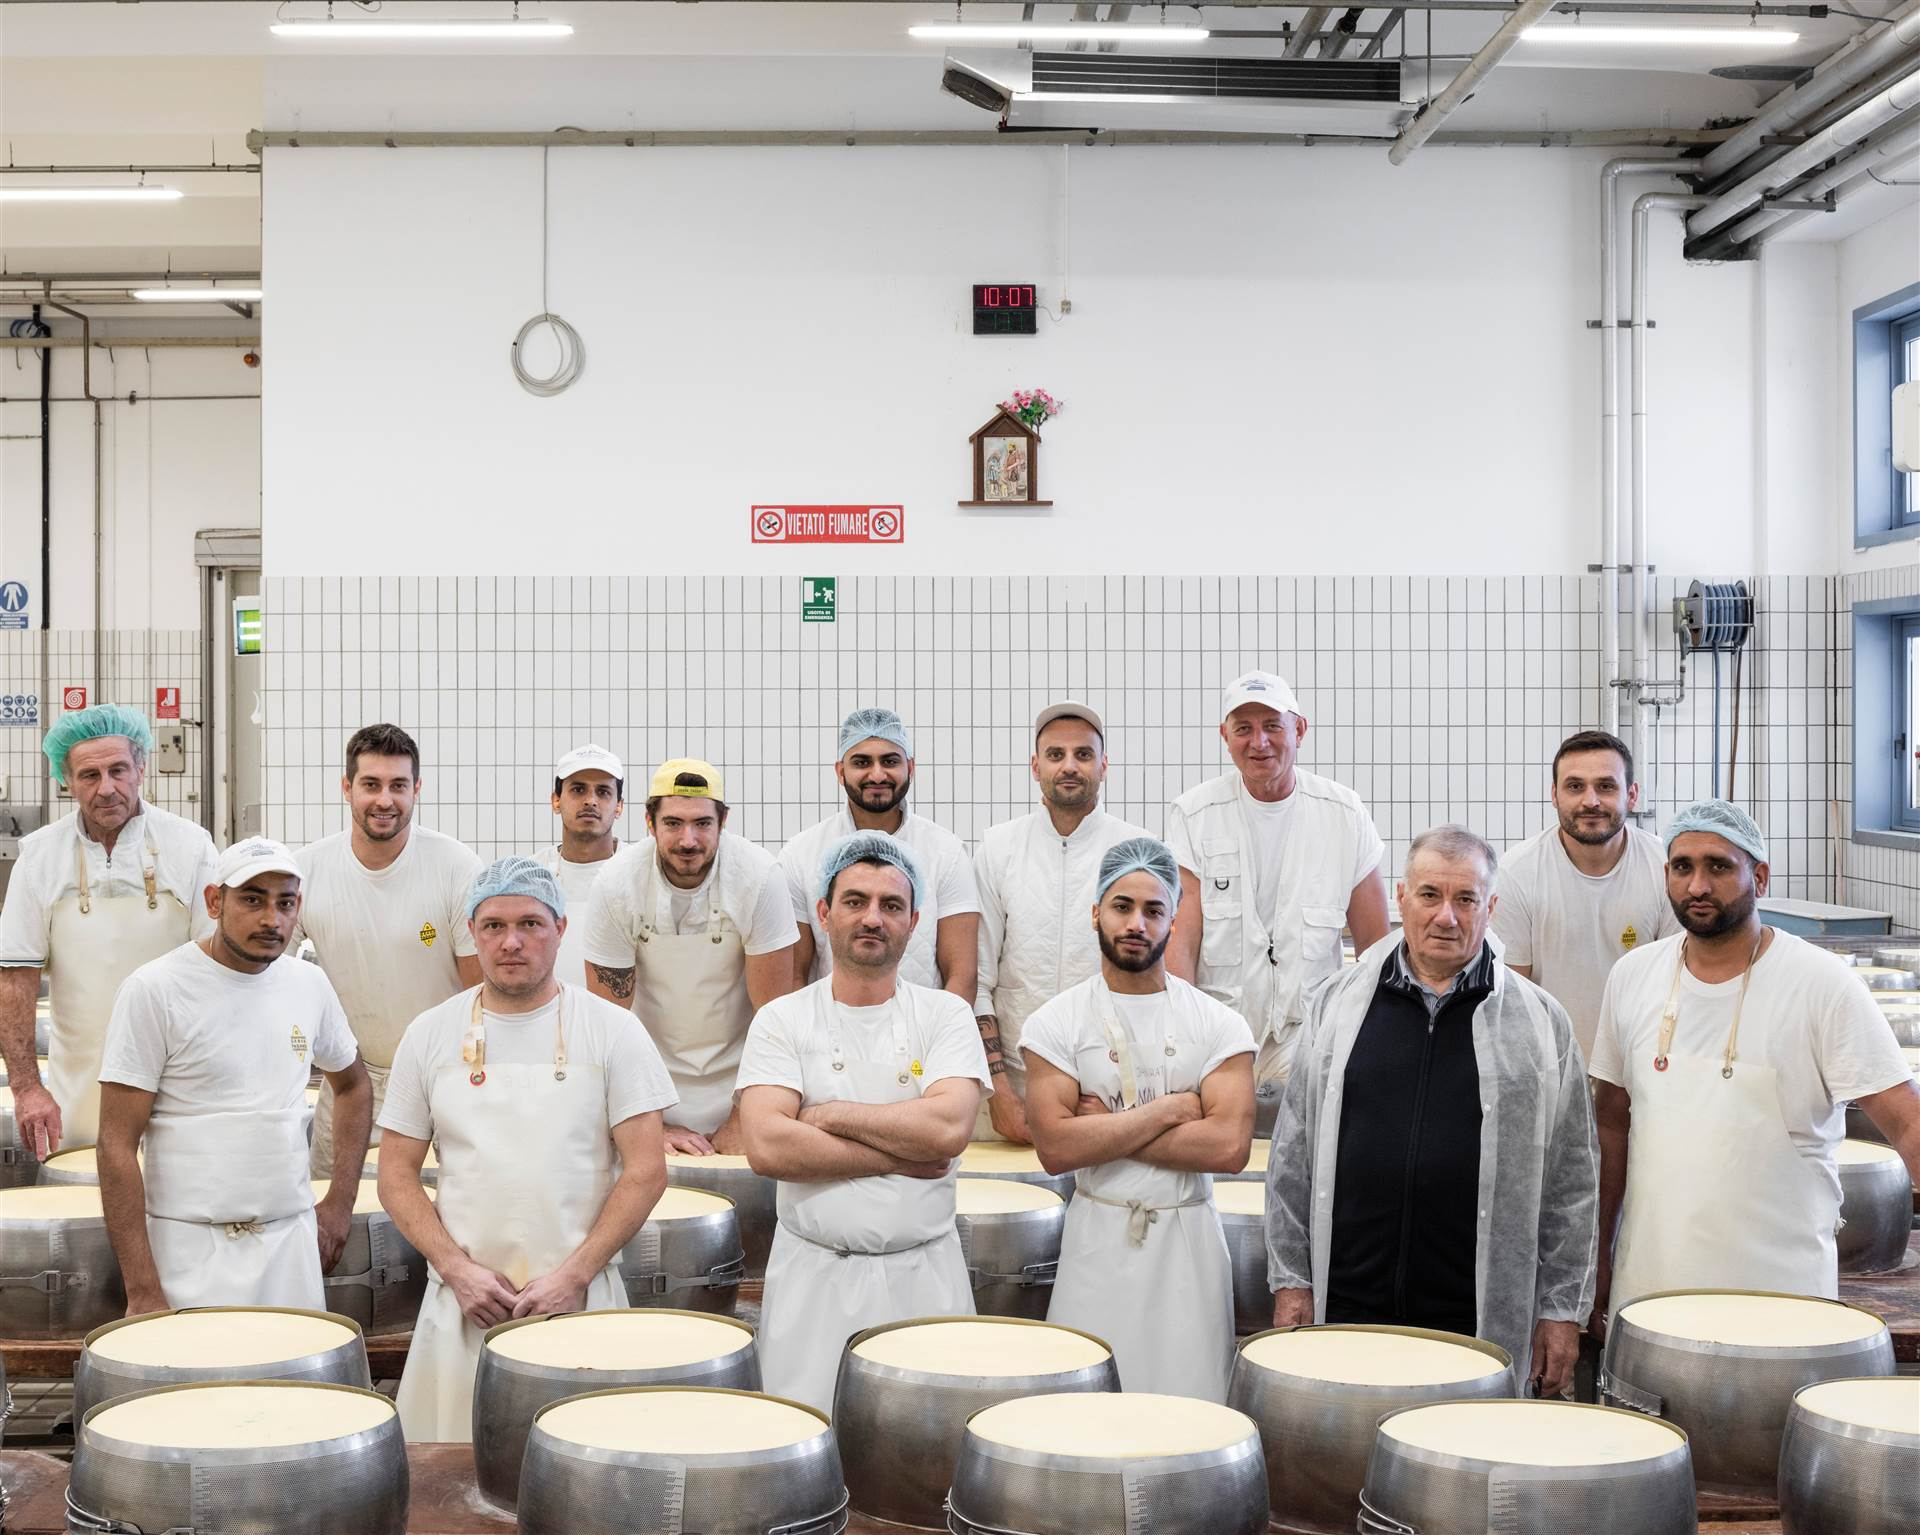 The team of technicians working in the dairy. <br>In the front row, second from the right, the president of the cooperative, Renato Zaghini